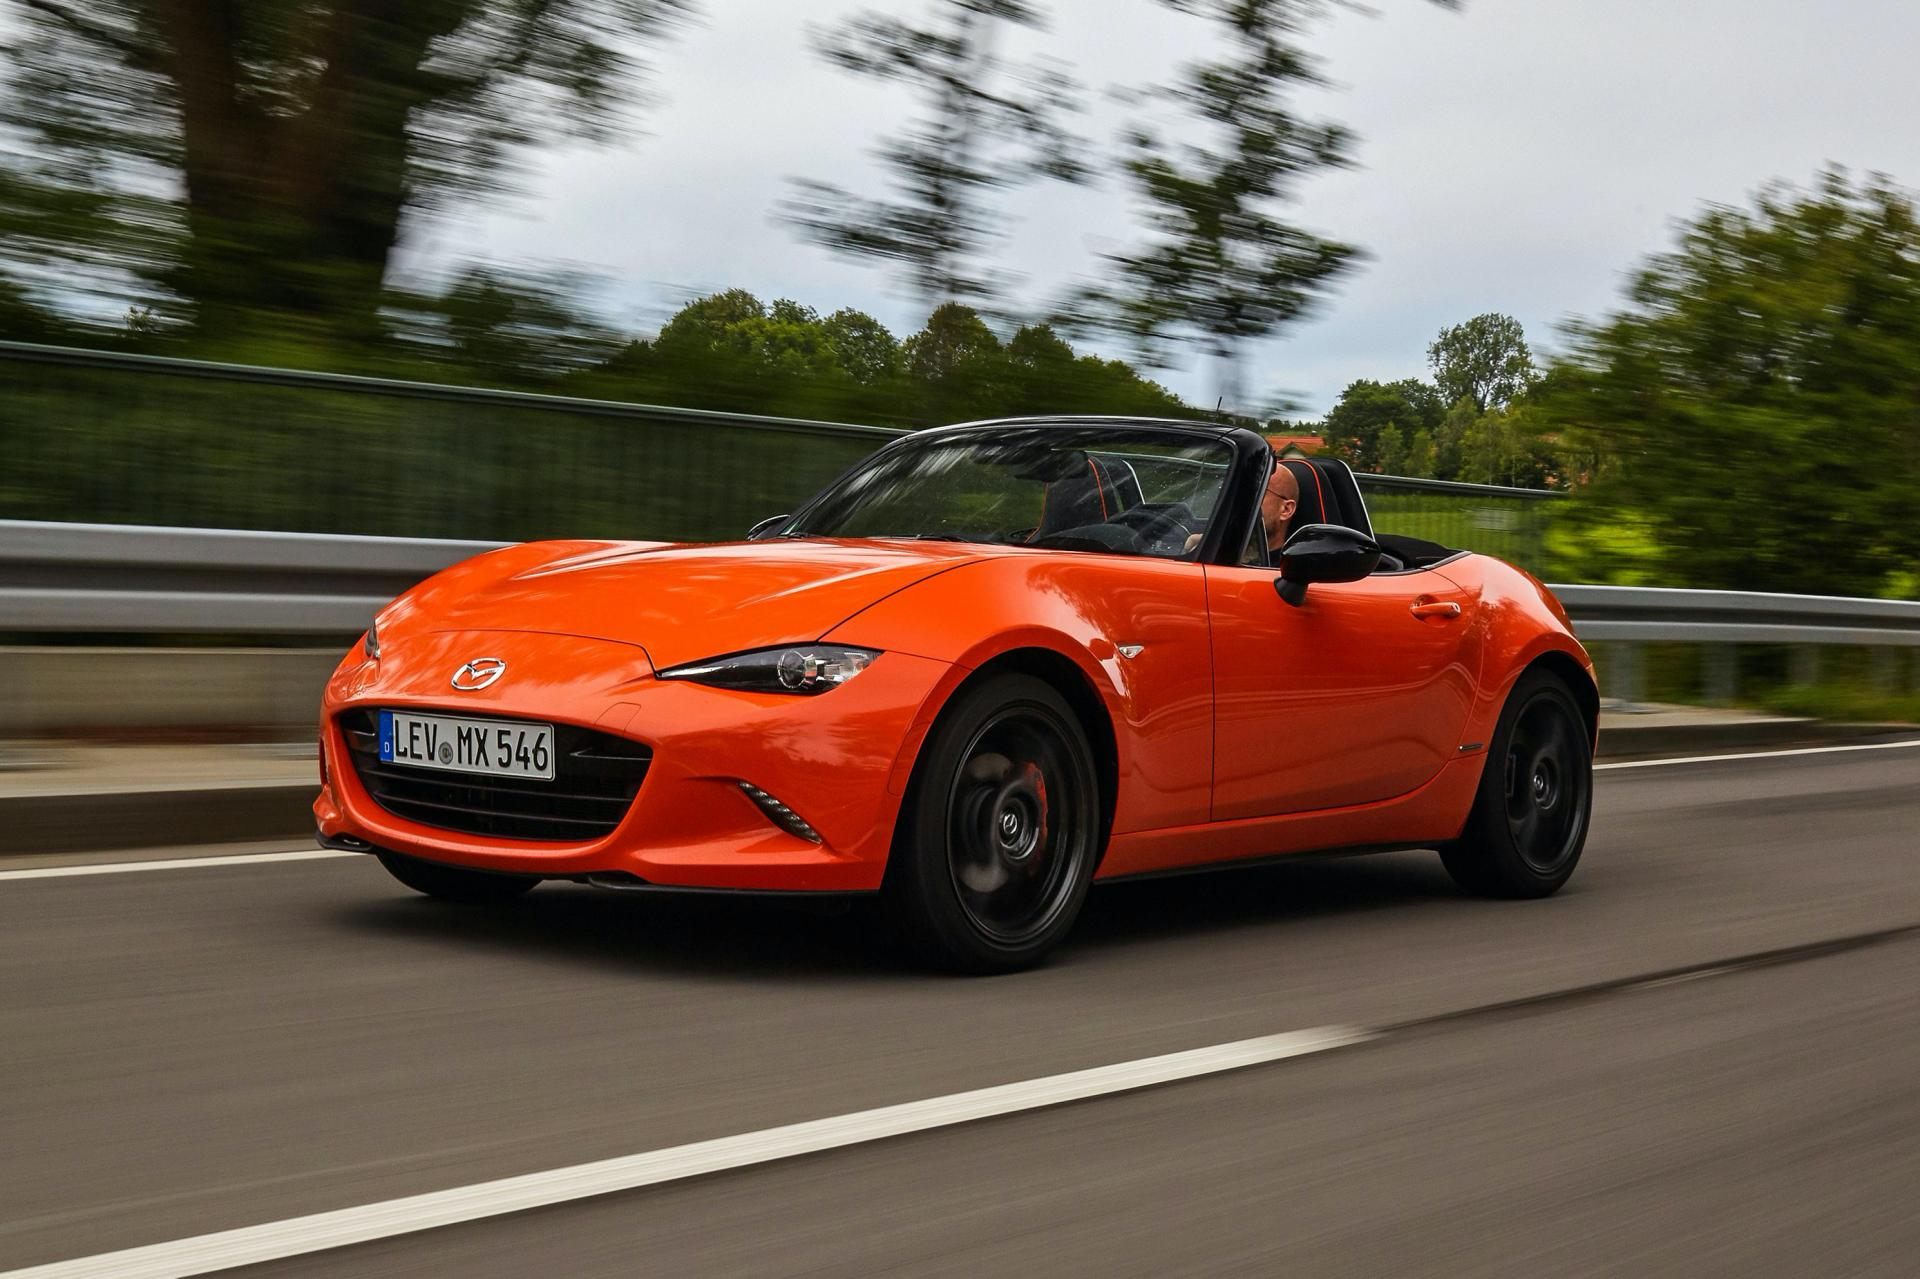 2019-Mazda-MX-5-30th-Anniversary-Euro-spec-1